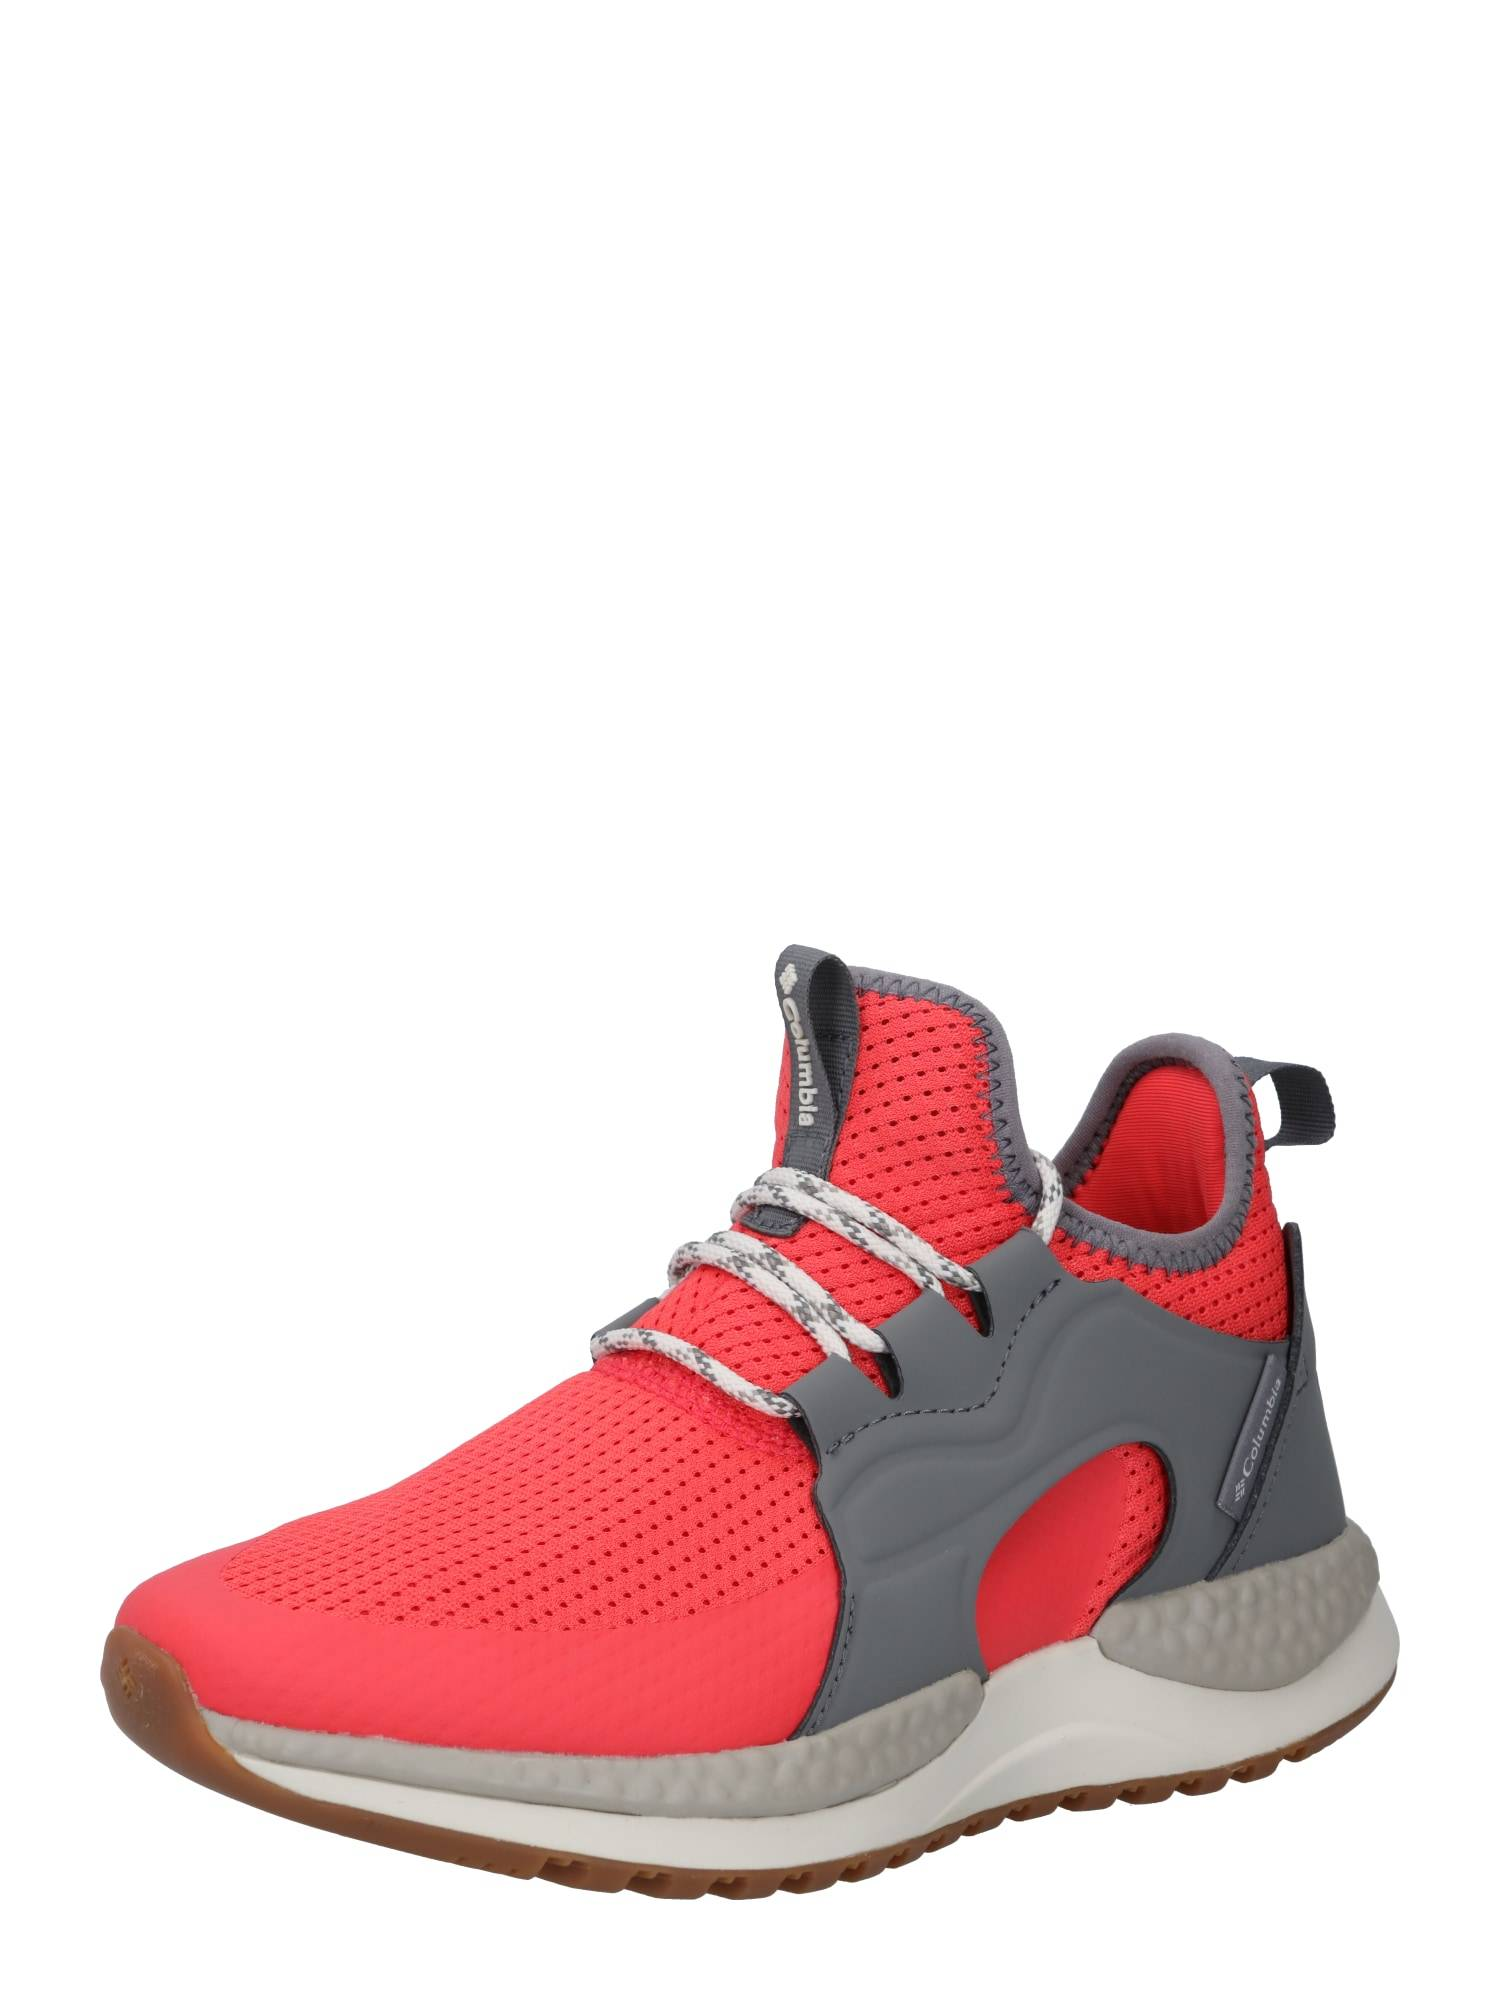 Columbia Baskets basses 'AURORA'  - Rouge - Taille: 9 - female